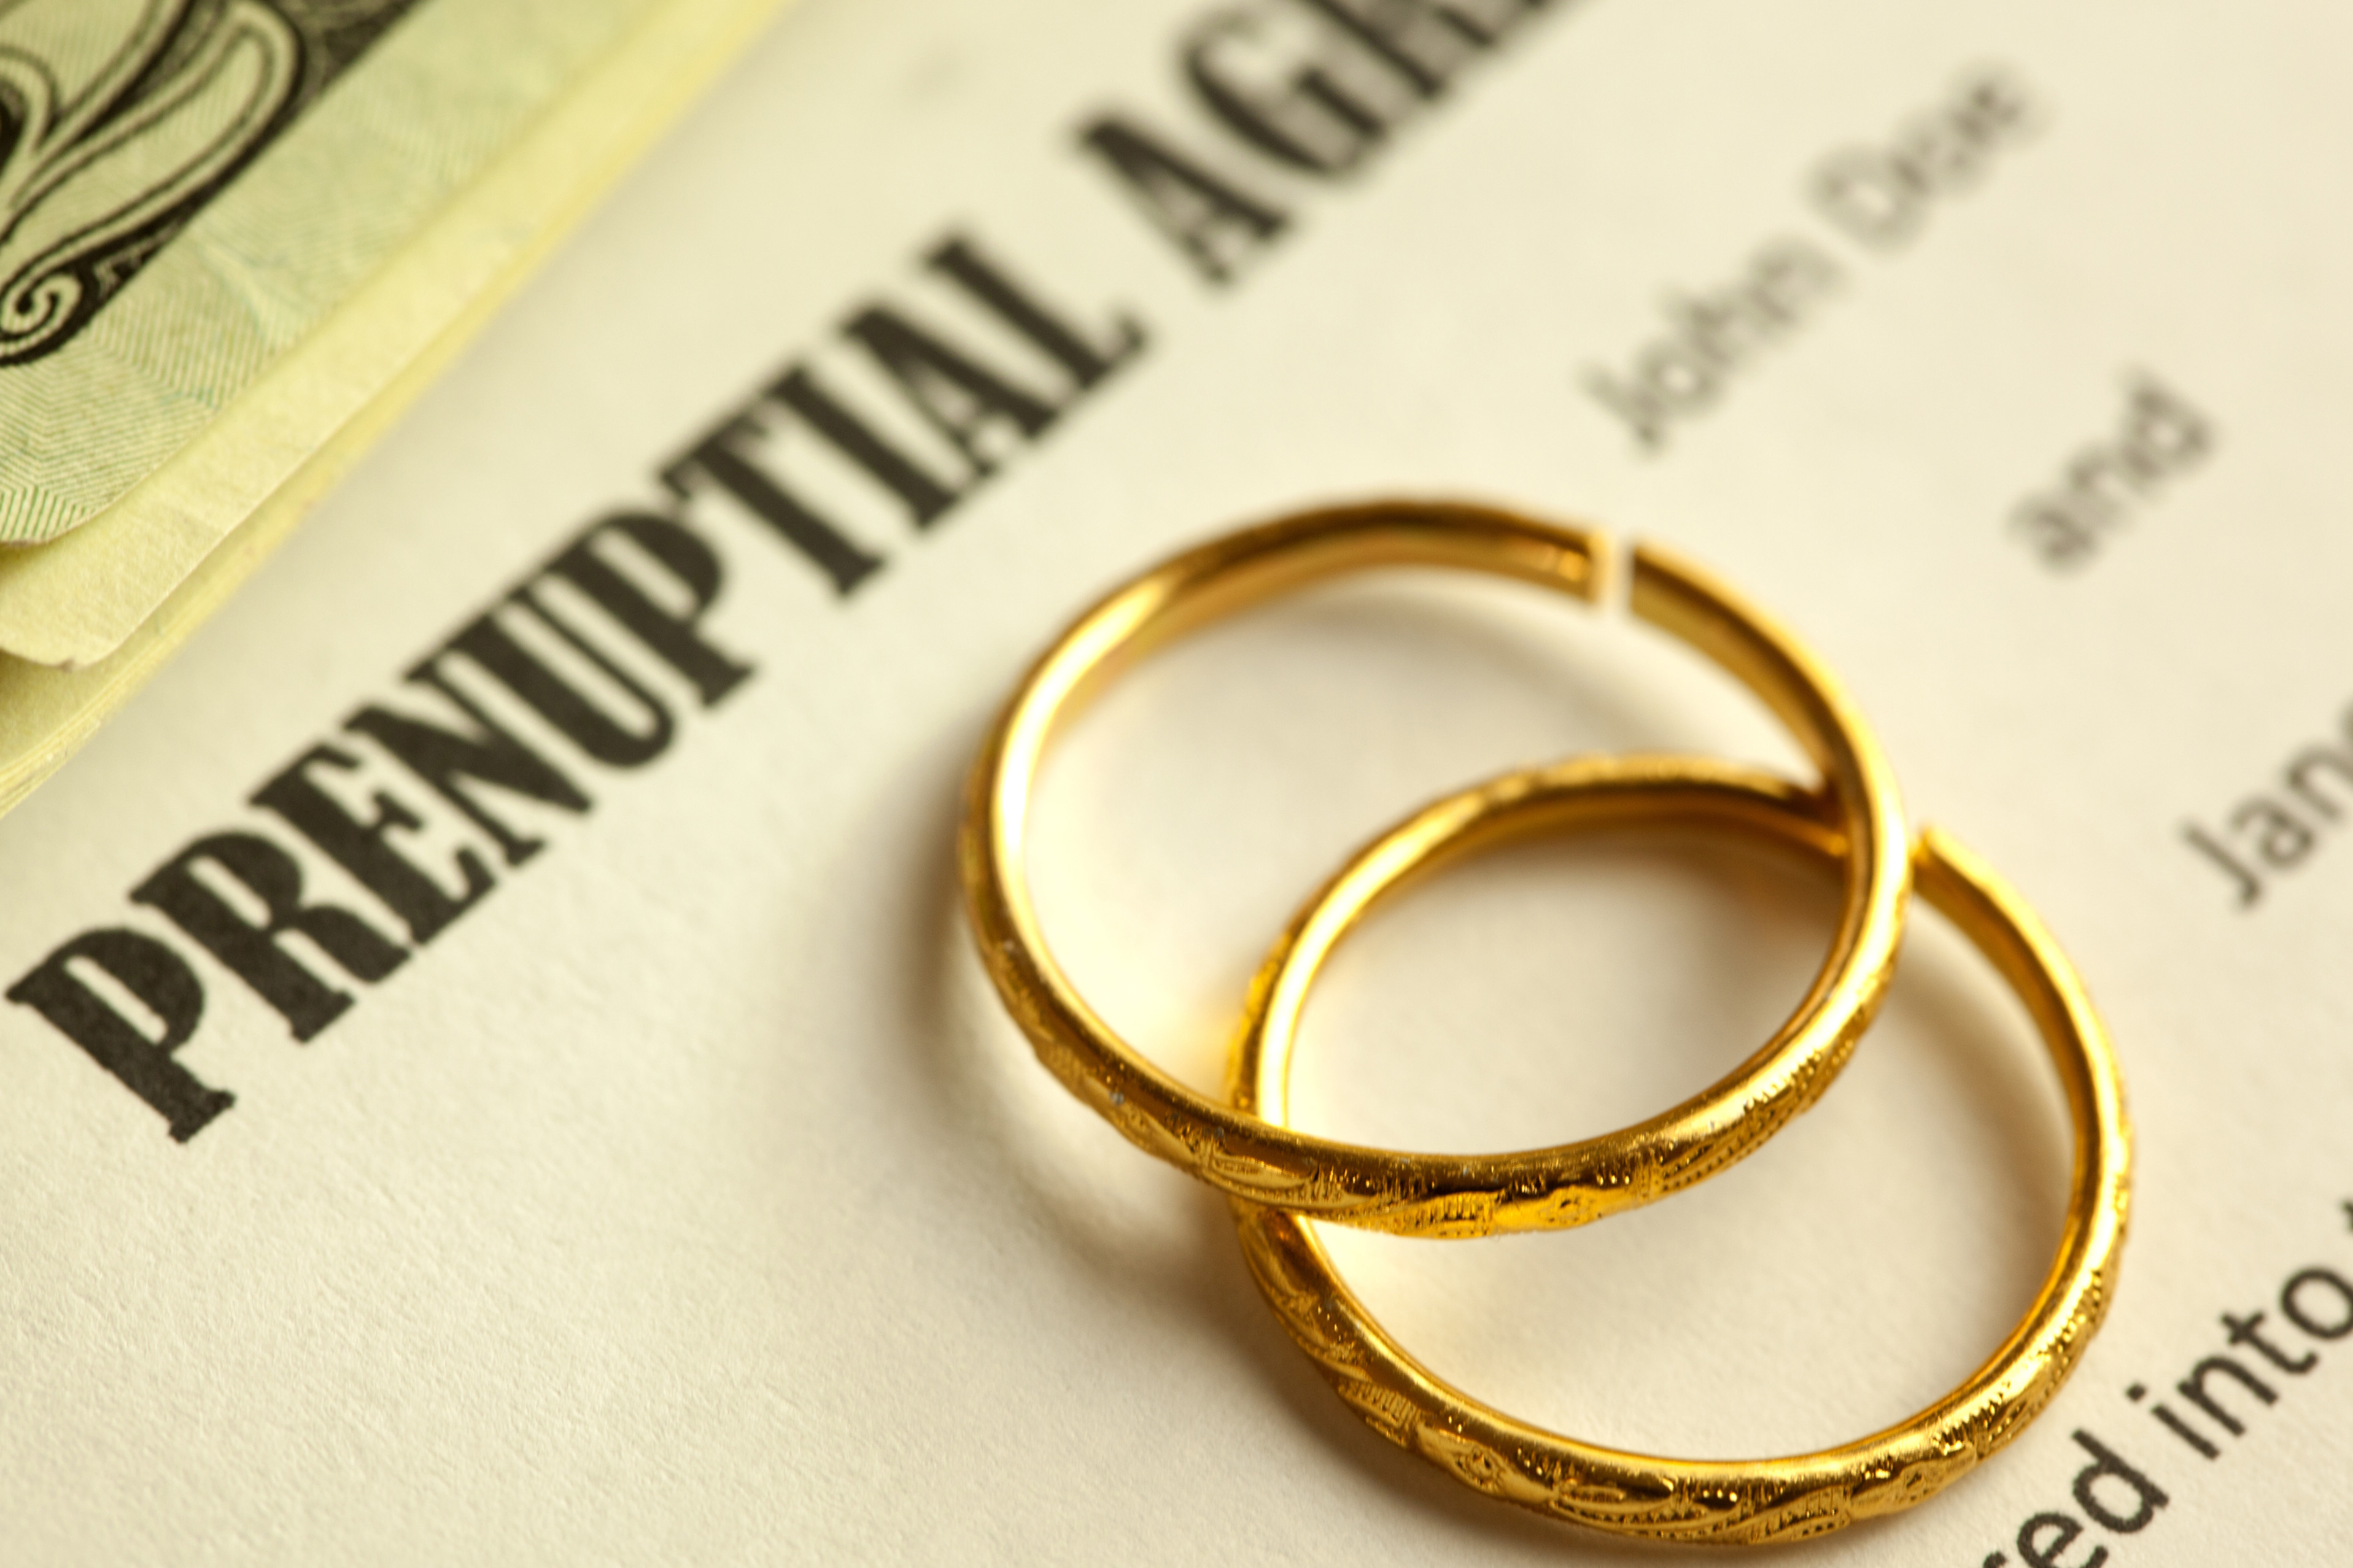 A prenup can protect your investments investing 101 us news platinumwayz